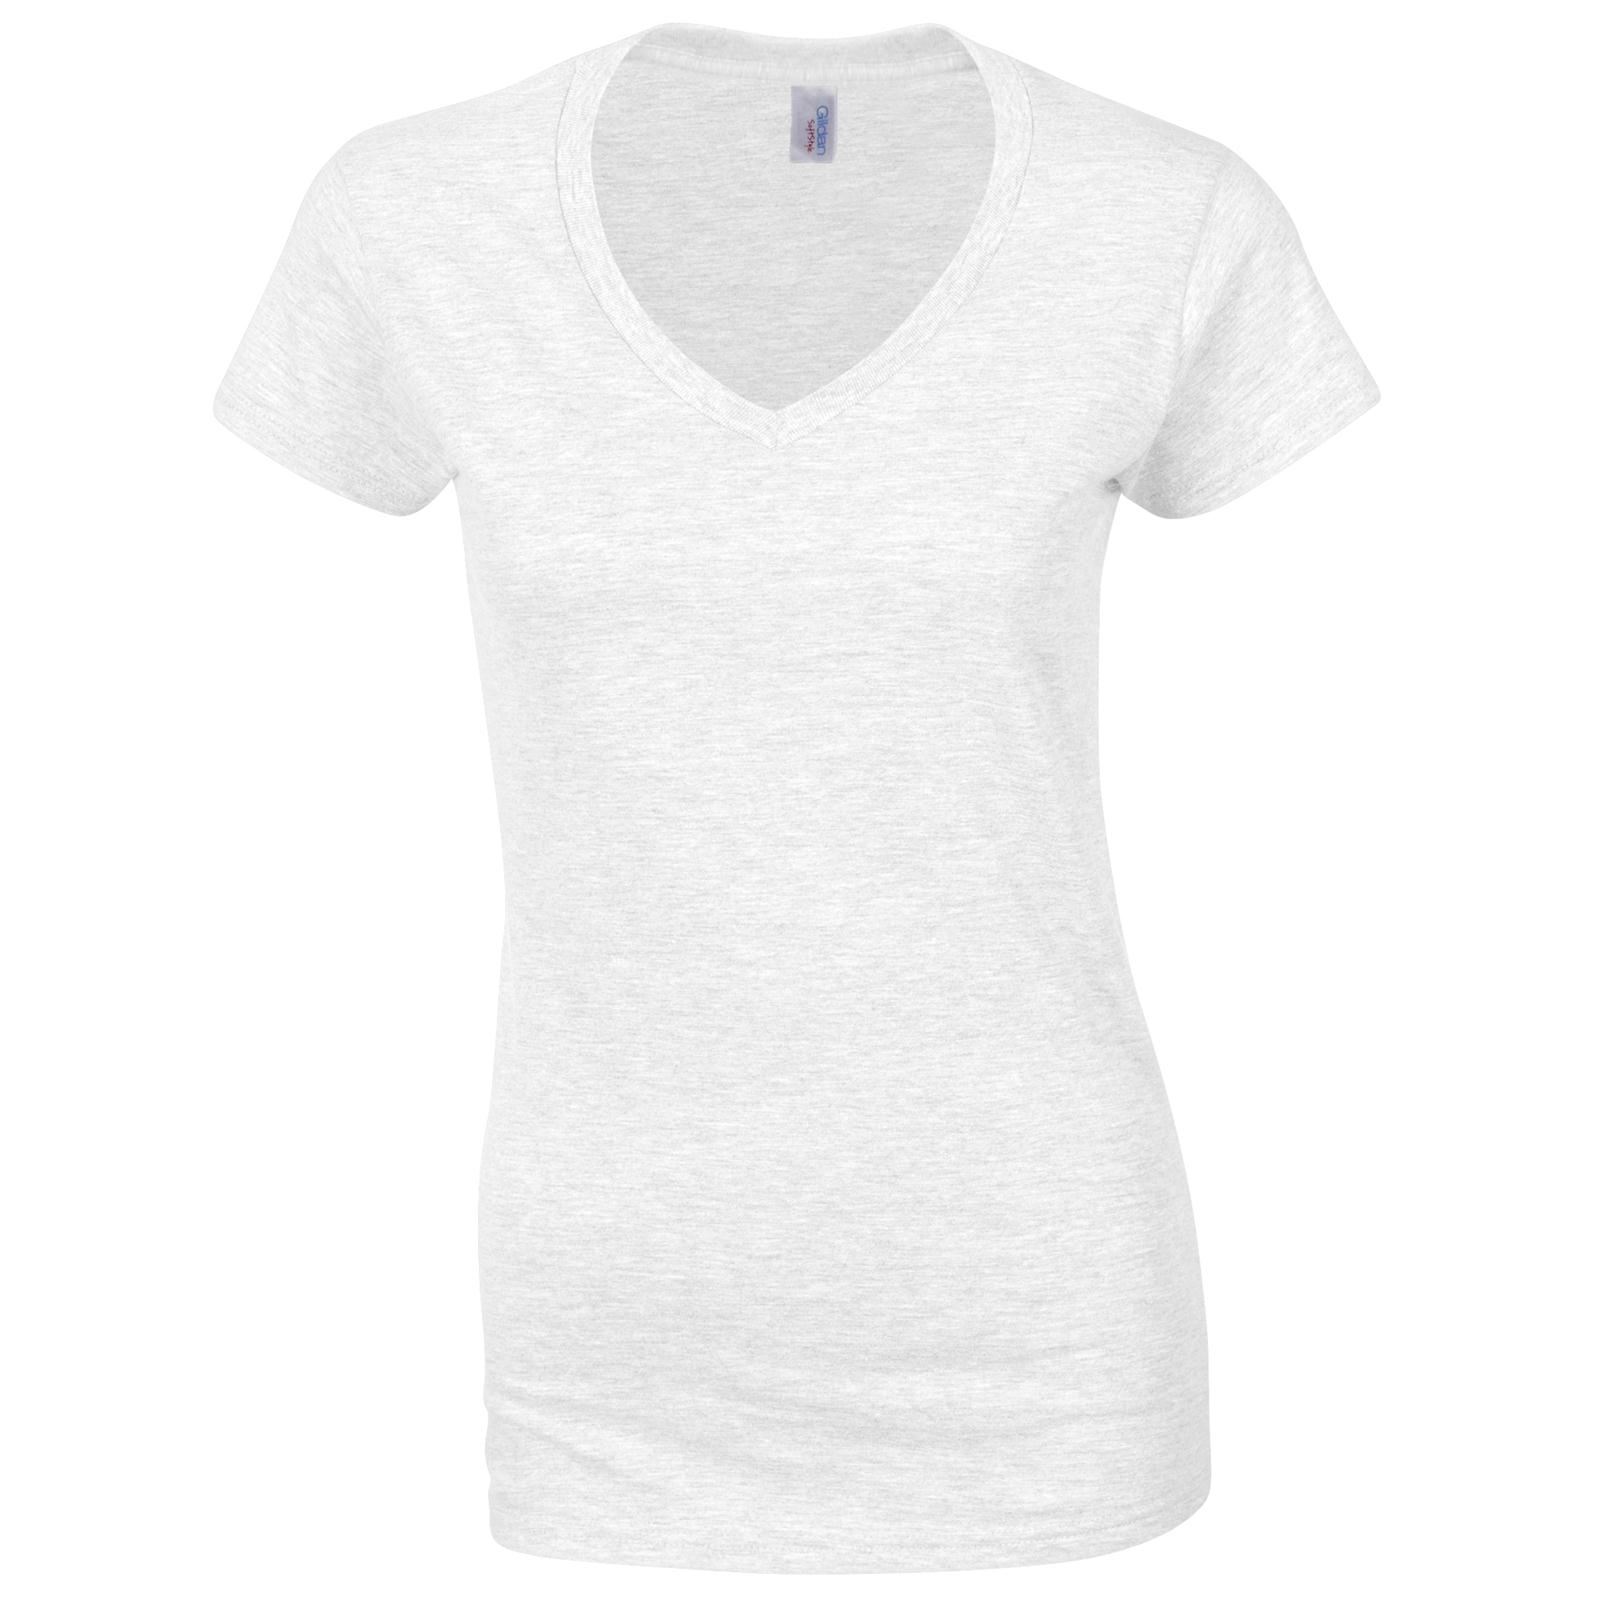 New Gildan Womens Ladies Soft Cotton Fitted V Neck T Shirt